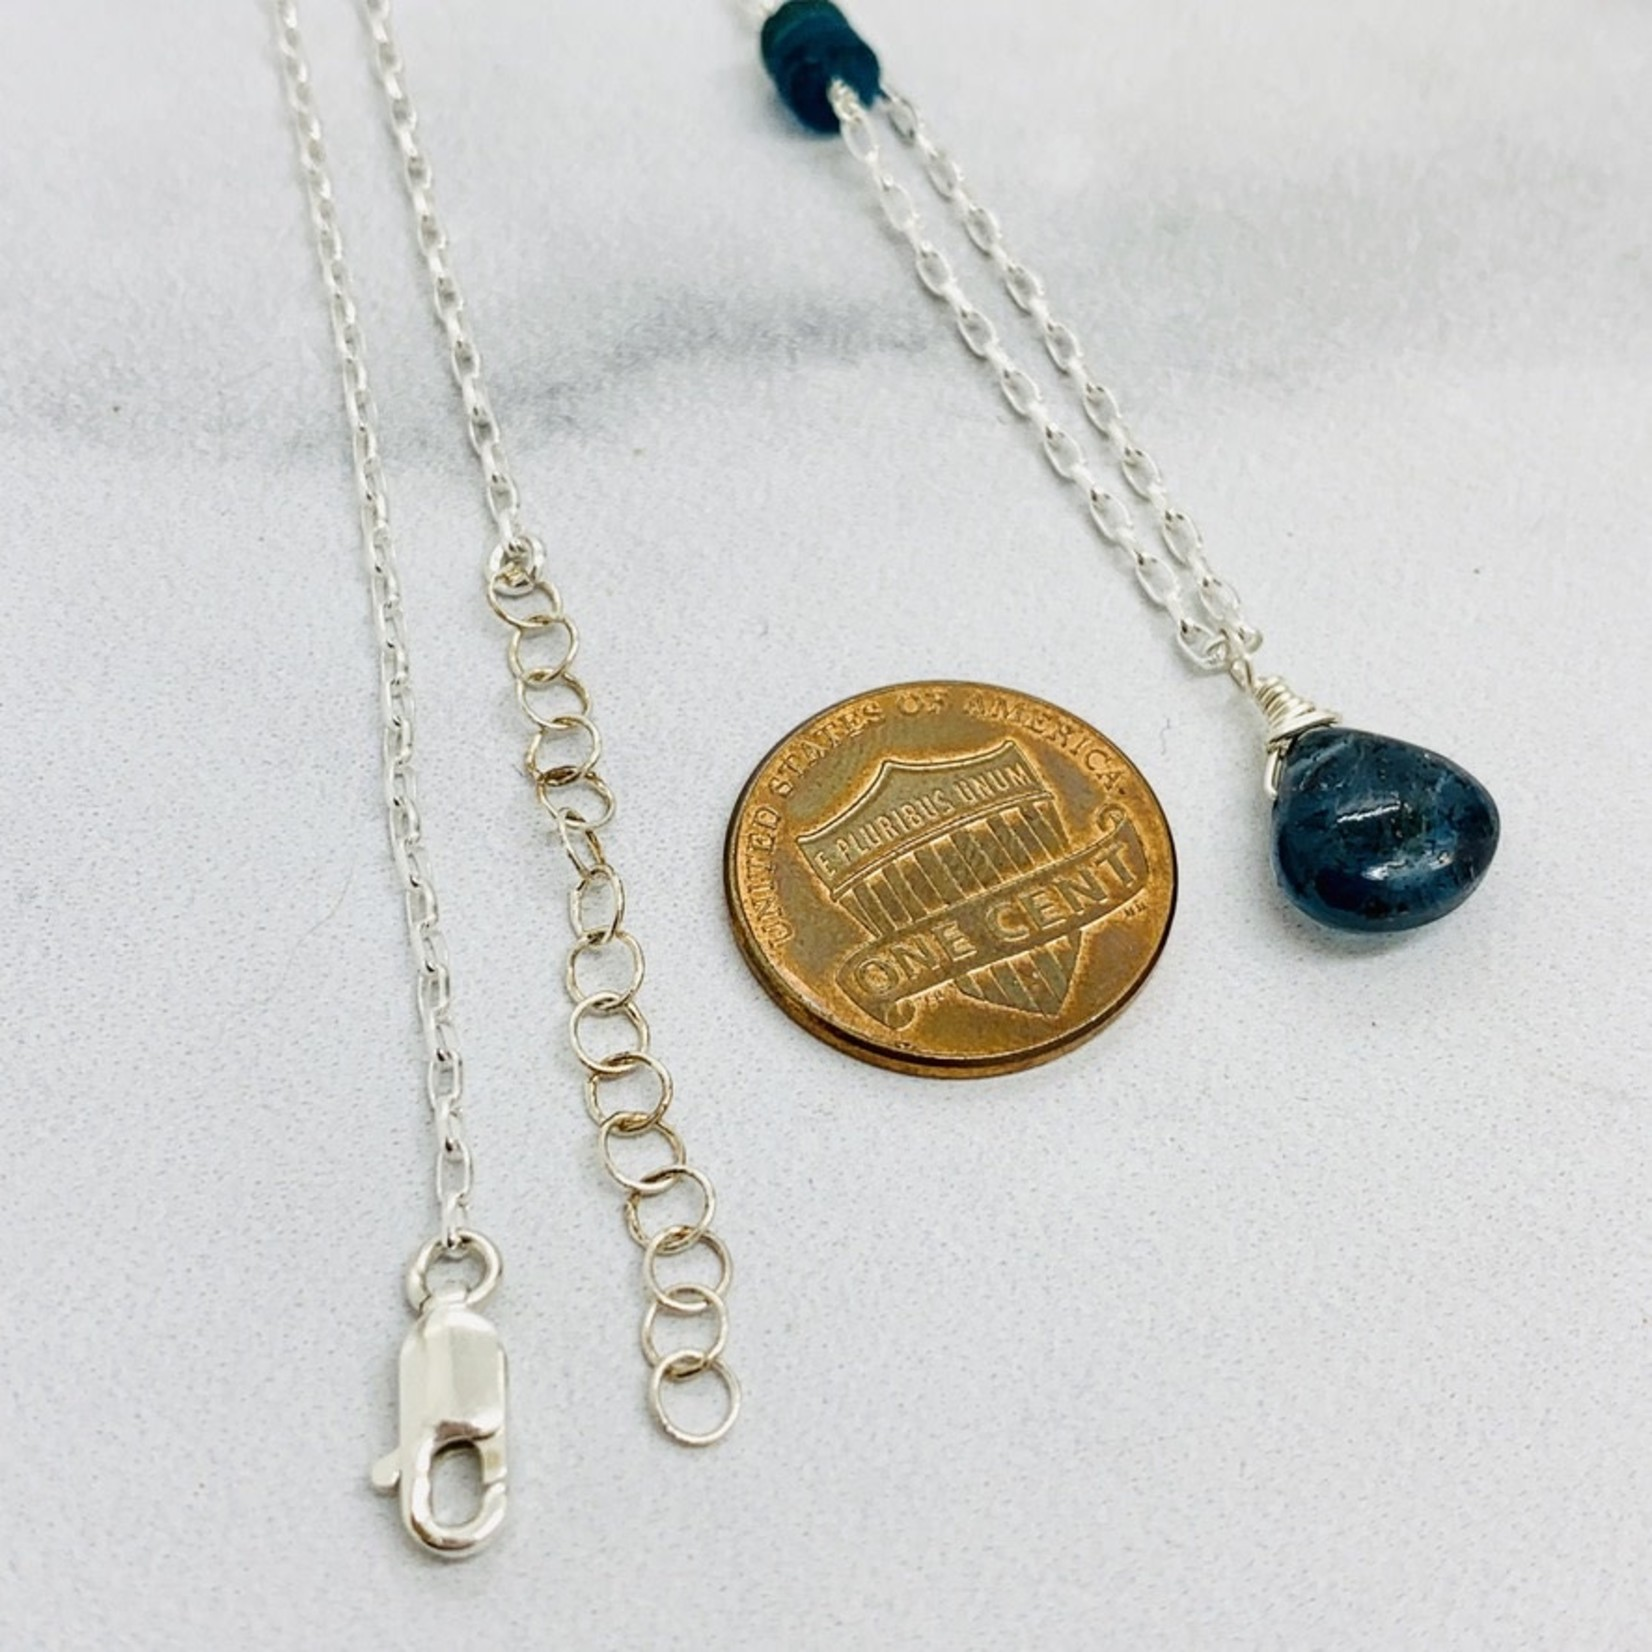 Handmade necklace with moss kyanite briolette, stack 3 roman sea glass